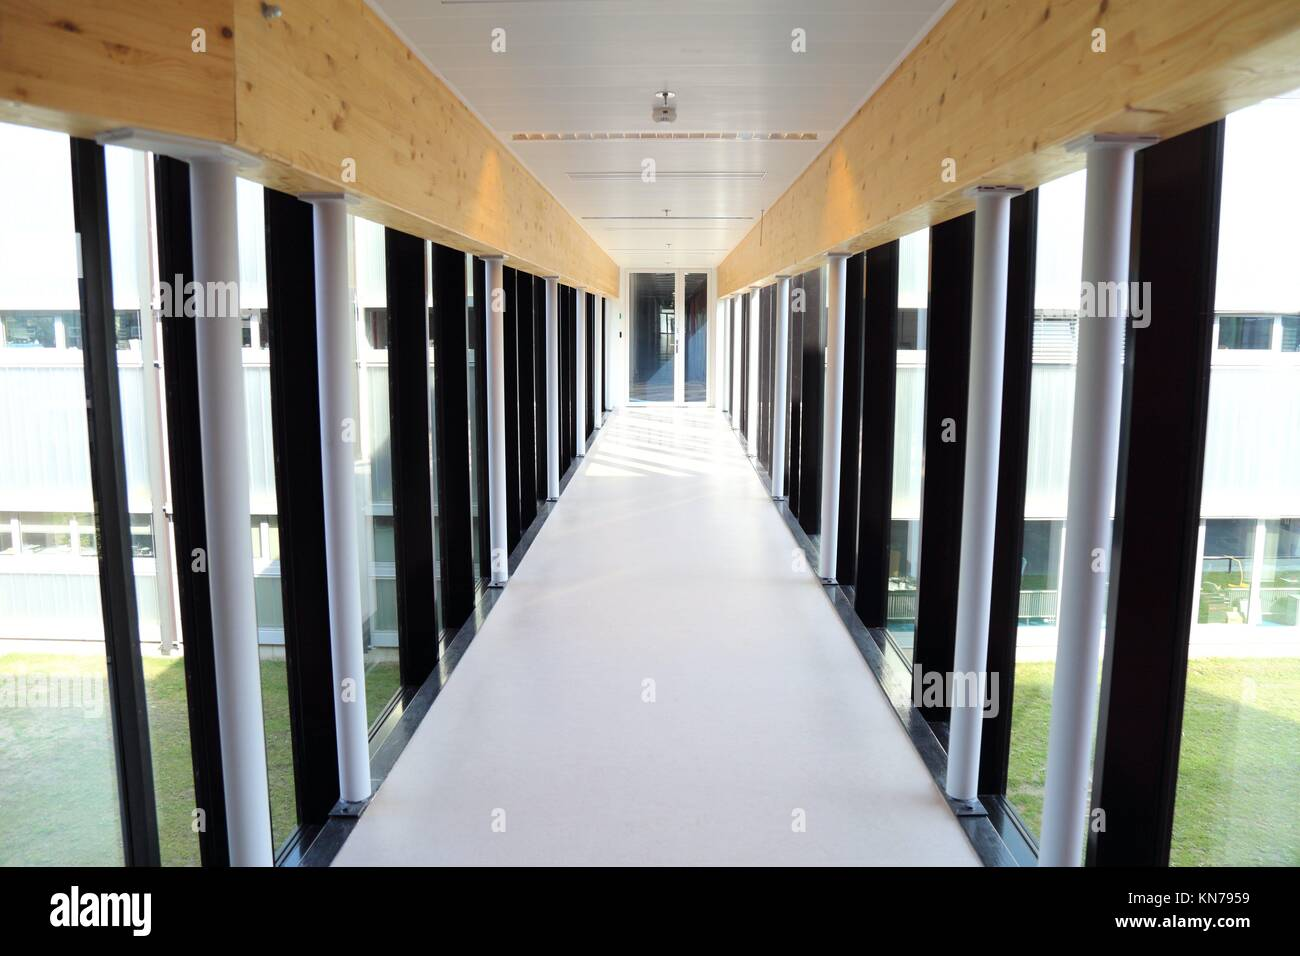 Hallway with transparent walls on a sunny day Stock Photo